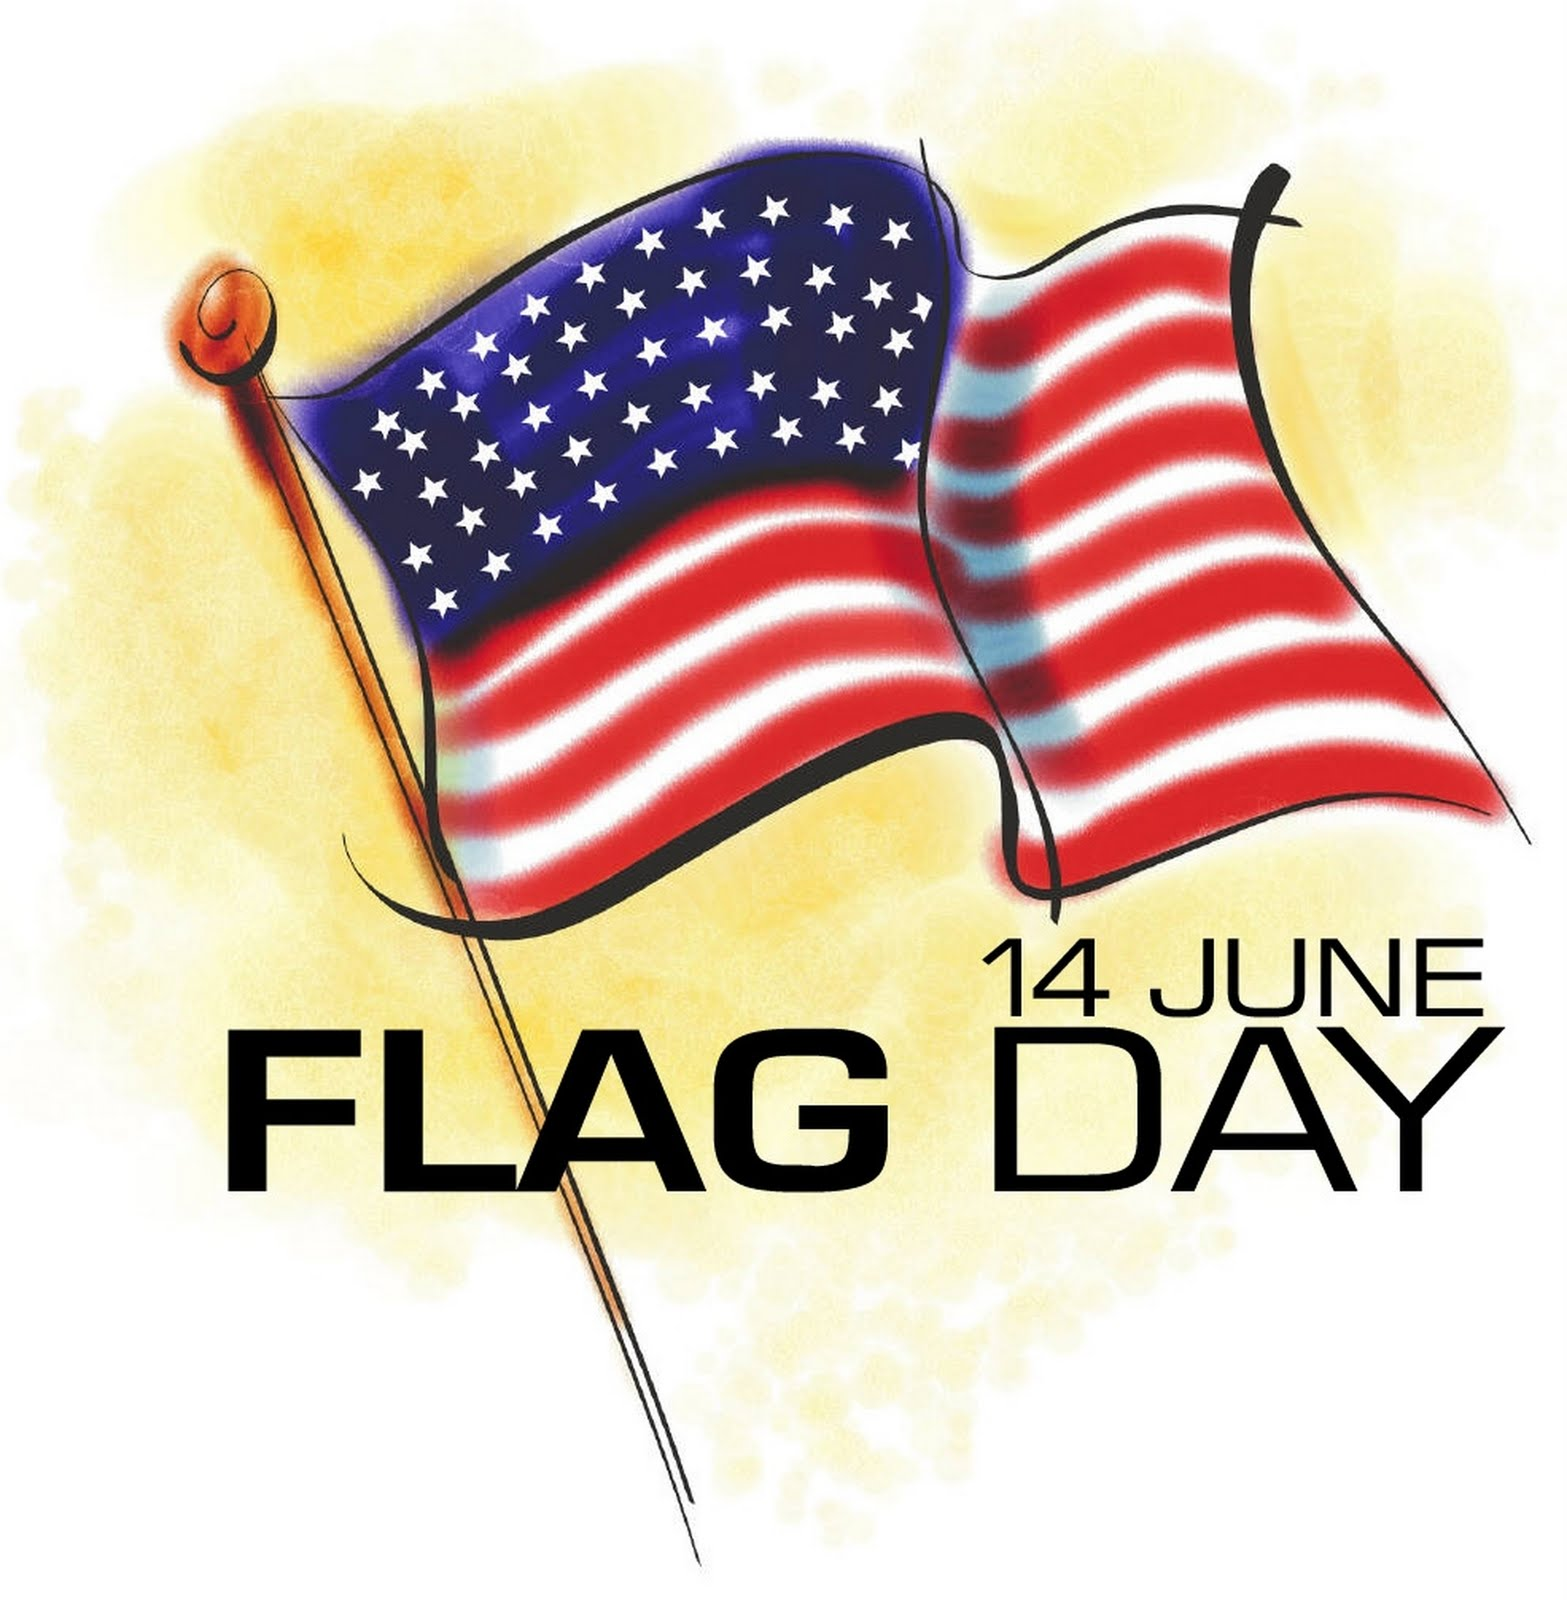 2017 clipart flag day. Annies home happy